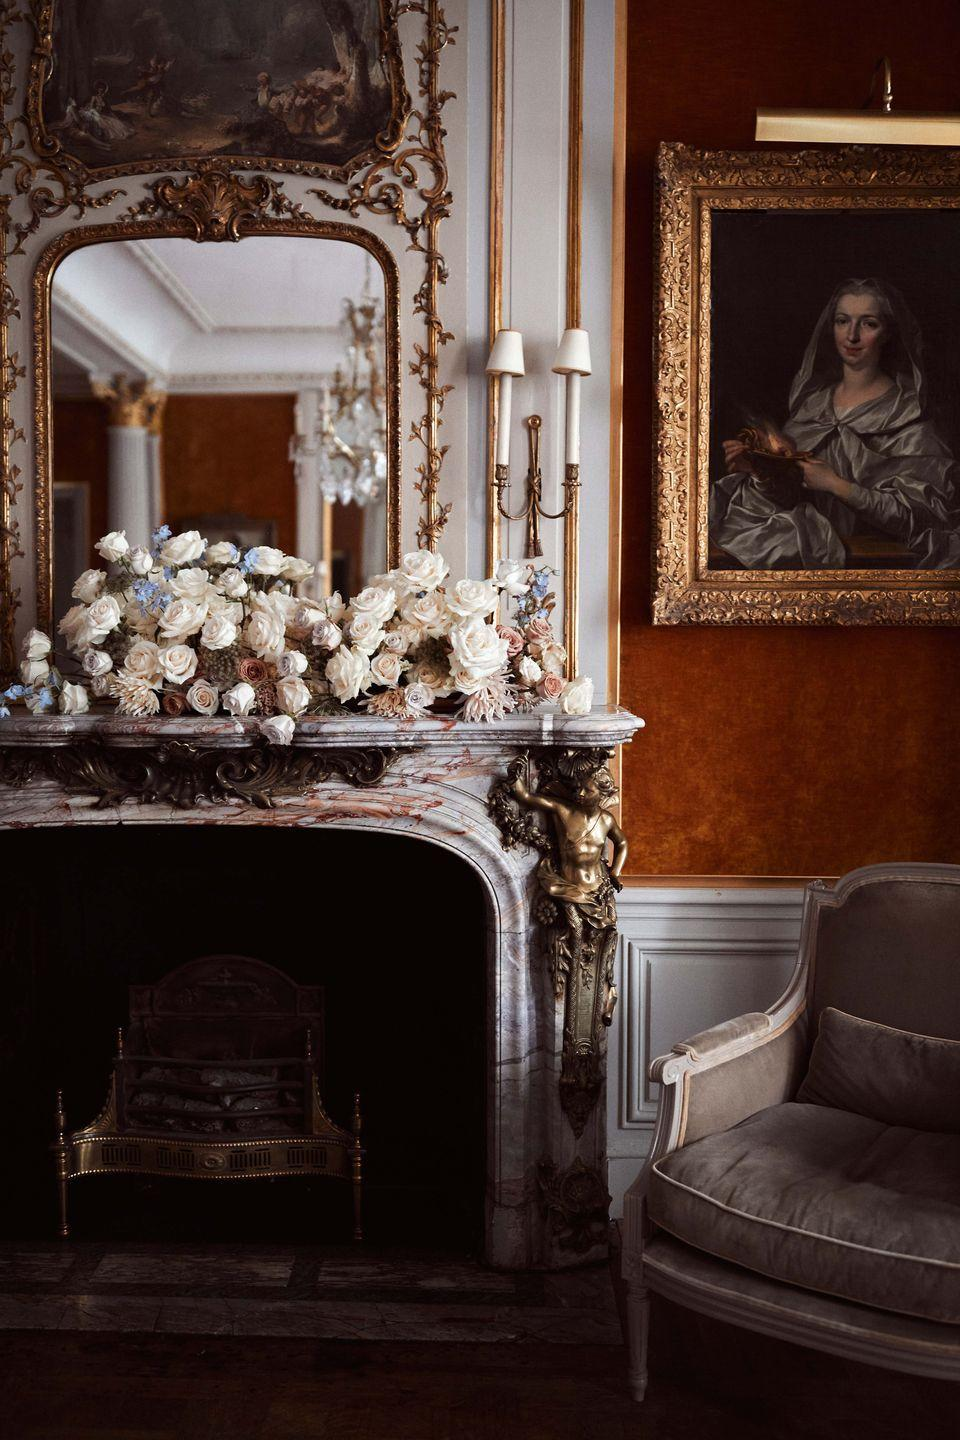 """<p>Florals are looking different for 2021 too, Van Helden believes.</p><p>""""There is definitely a trend towards flowers that are understated, romantic and elegant. Our advice is to stick to seasonal arrangements to make sure it feels natural and not contrived. We're also seeing more requests for arrangements with a mass of one type of flower. It feels more natural and understated as this is the way in which flowers tend to grow in the wild.</p><p>""""Bouquets are getting smaller as bigger arrangements tend to lend themselves to larger weddings. We've had a number of requests in 2021 for Lily of the Valley and posey style bouquets. This sort of style also suits the trend towards cleaner, more minimal tailored bridal fashion such as jumpsuits and suits, which have been popular with brides in 2020.""""</p>"""